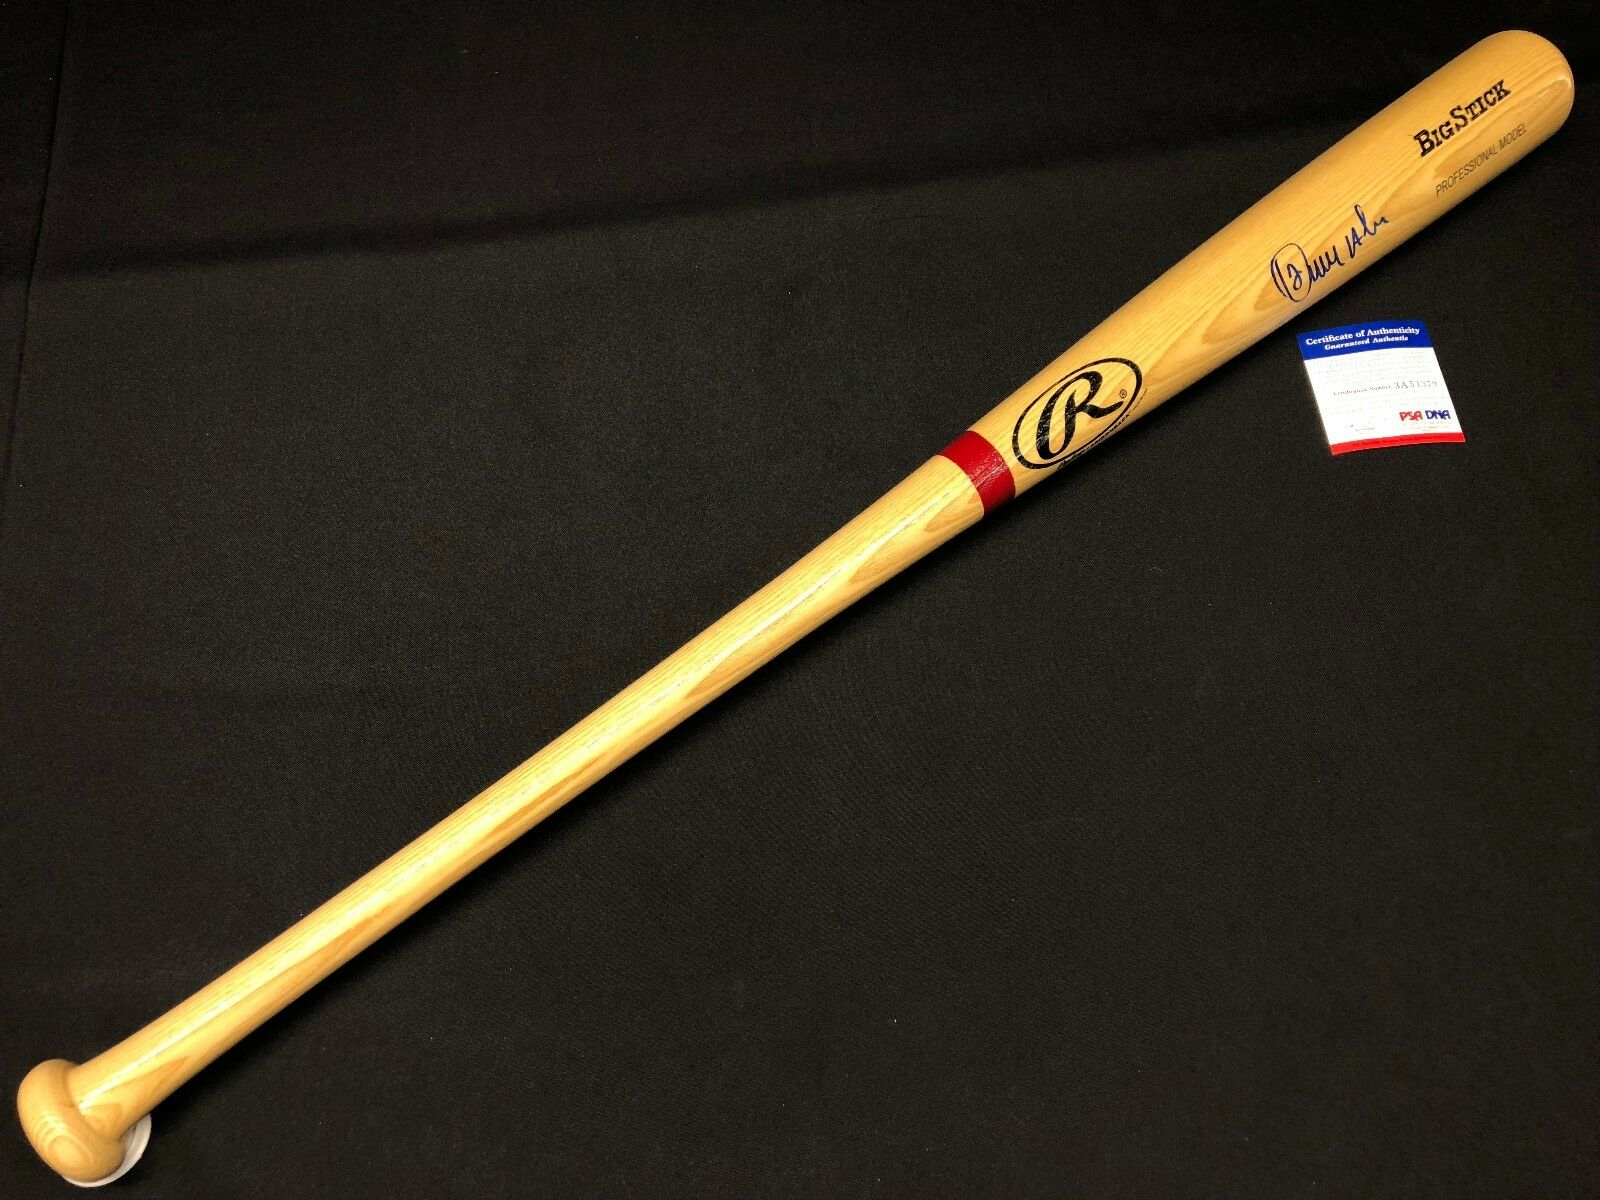 Erick Aybar Signed Ash Rawlings Big Stick Baseball Bat *Angels PSA 3A54379